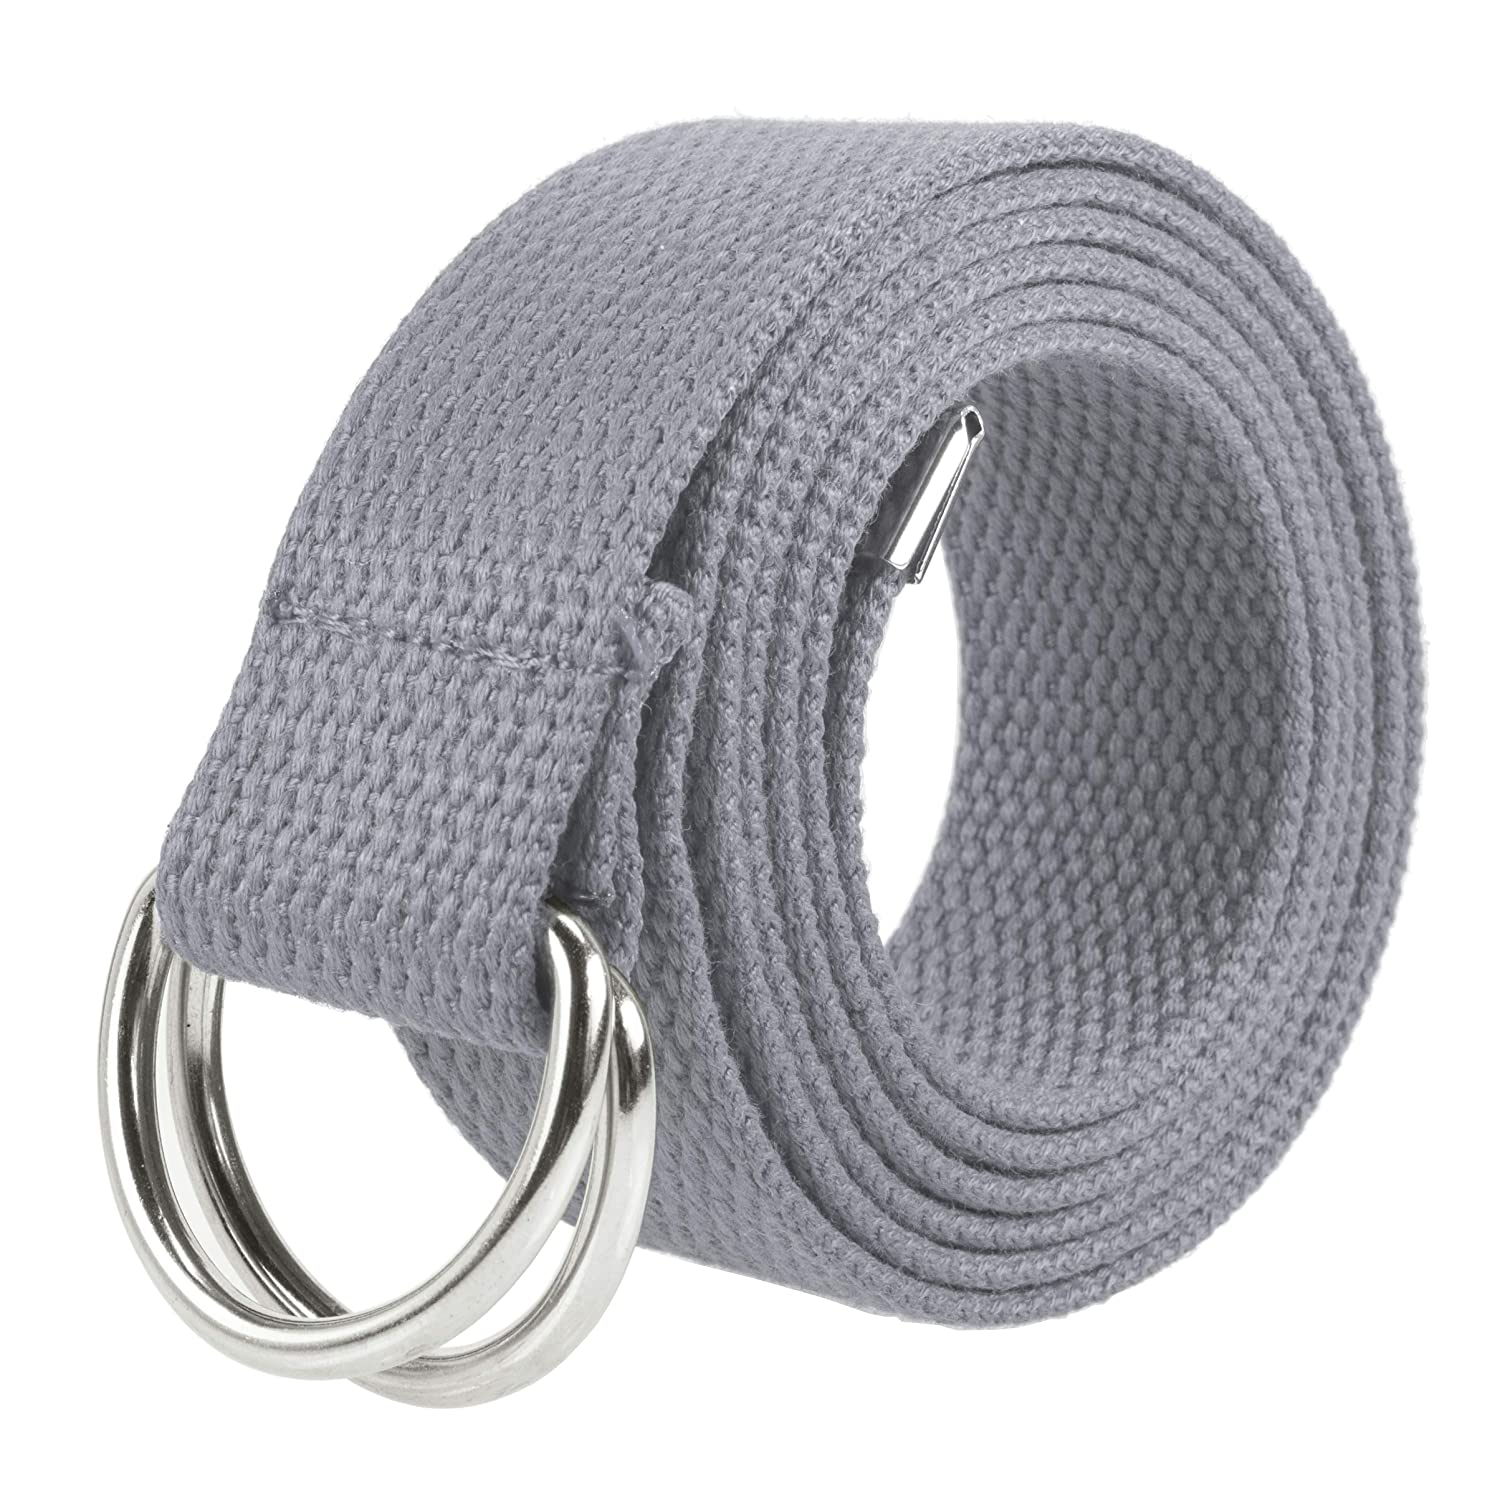 Gelante Canvas Web D Ring Belt Silver Buckle Military Style for men /& women 1 or 3 pcs